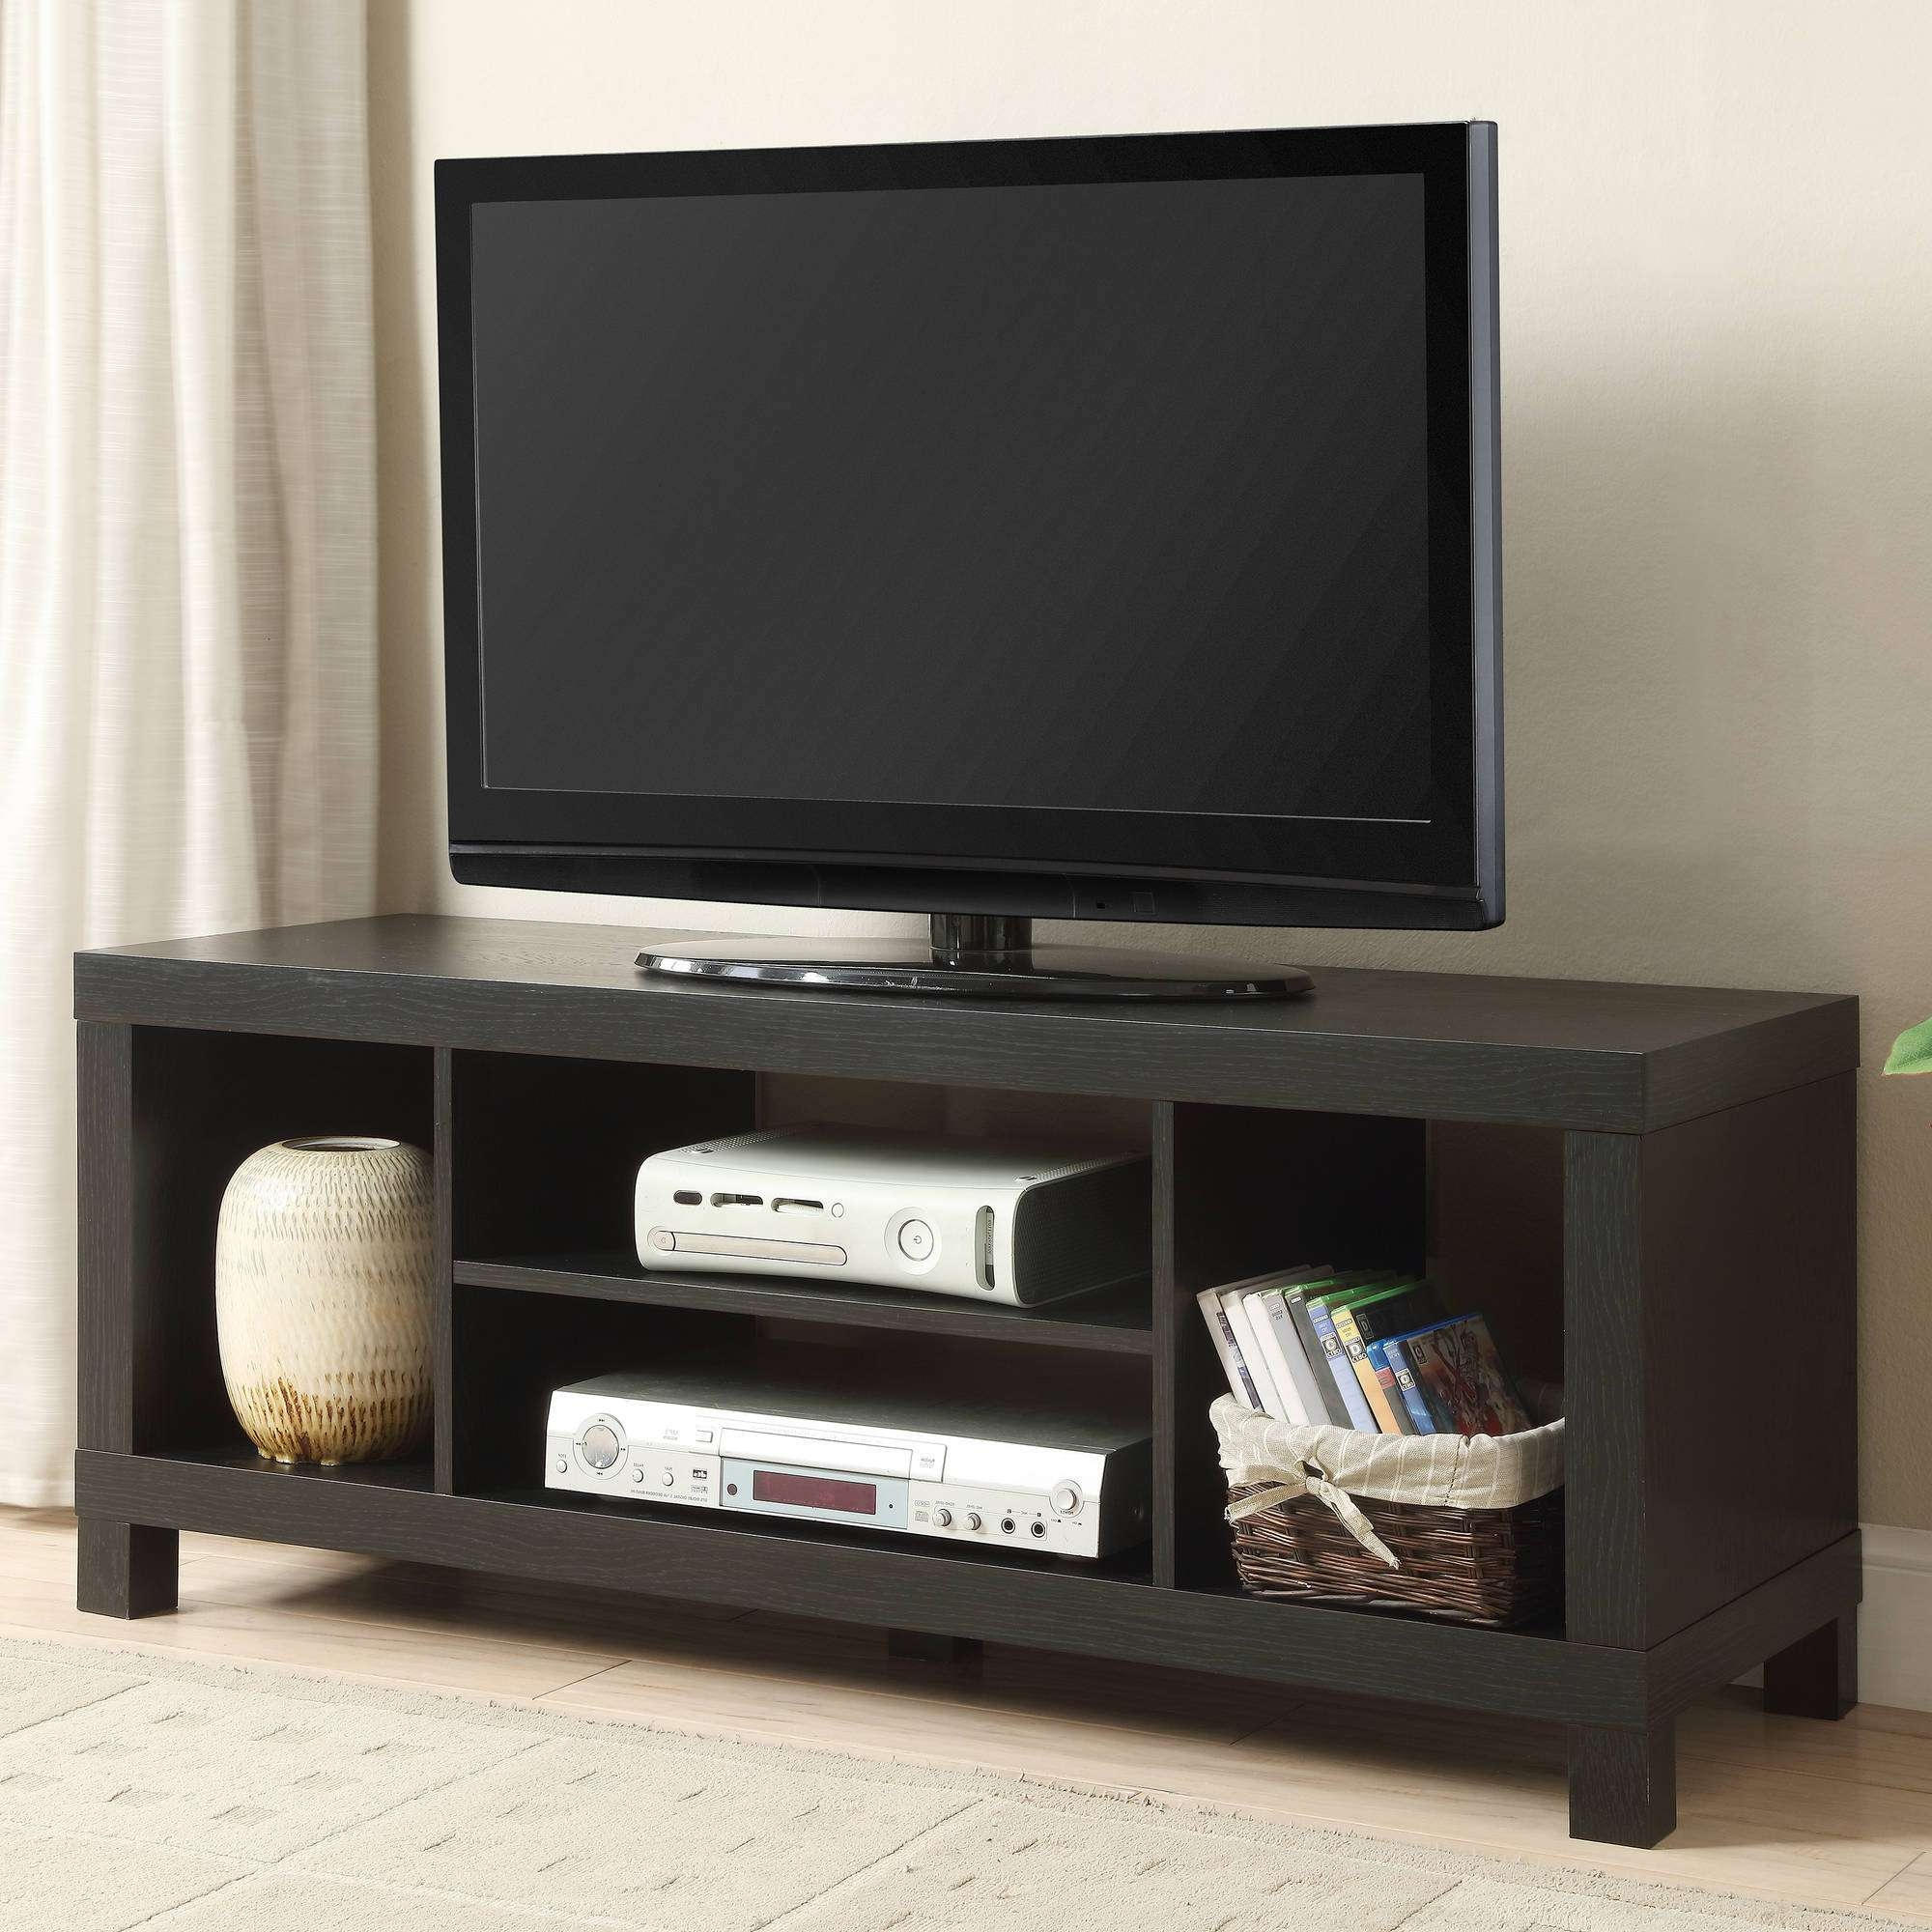 Tv Stands – Walmart In Wooden Tv Stands For 50 Inch Tv (View 10 of 15)